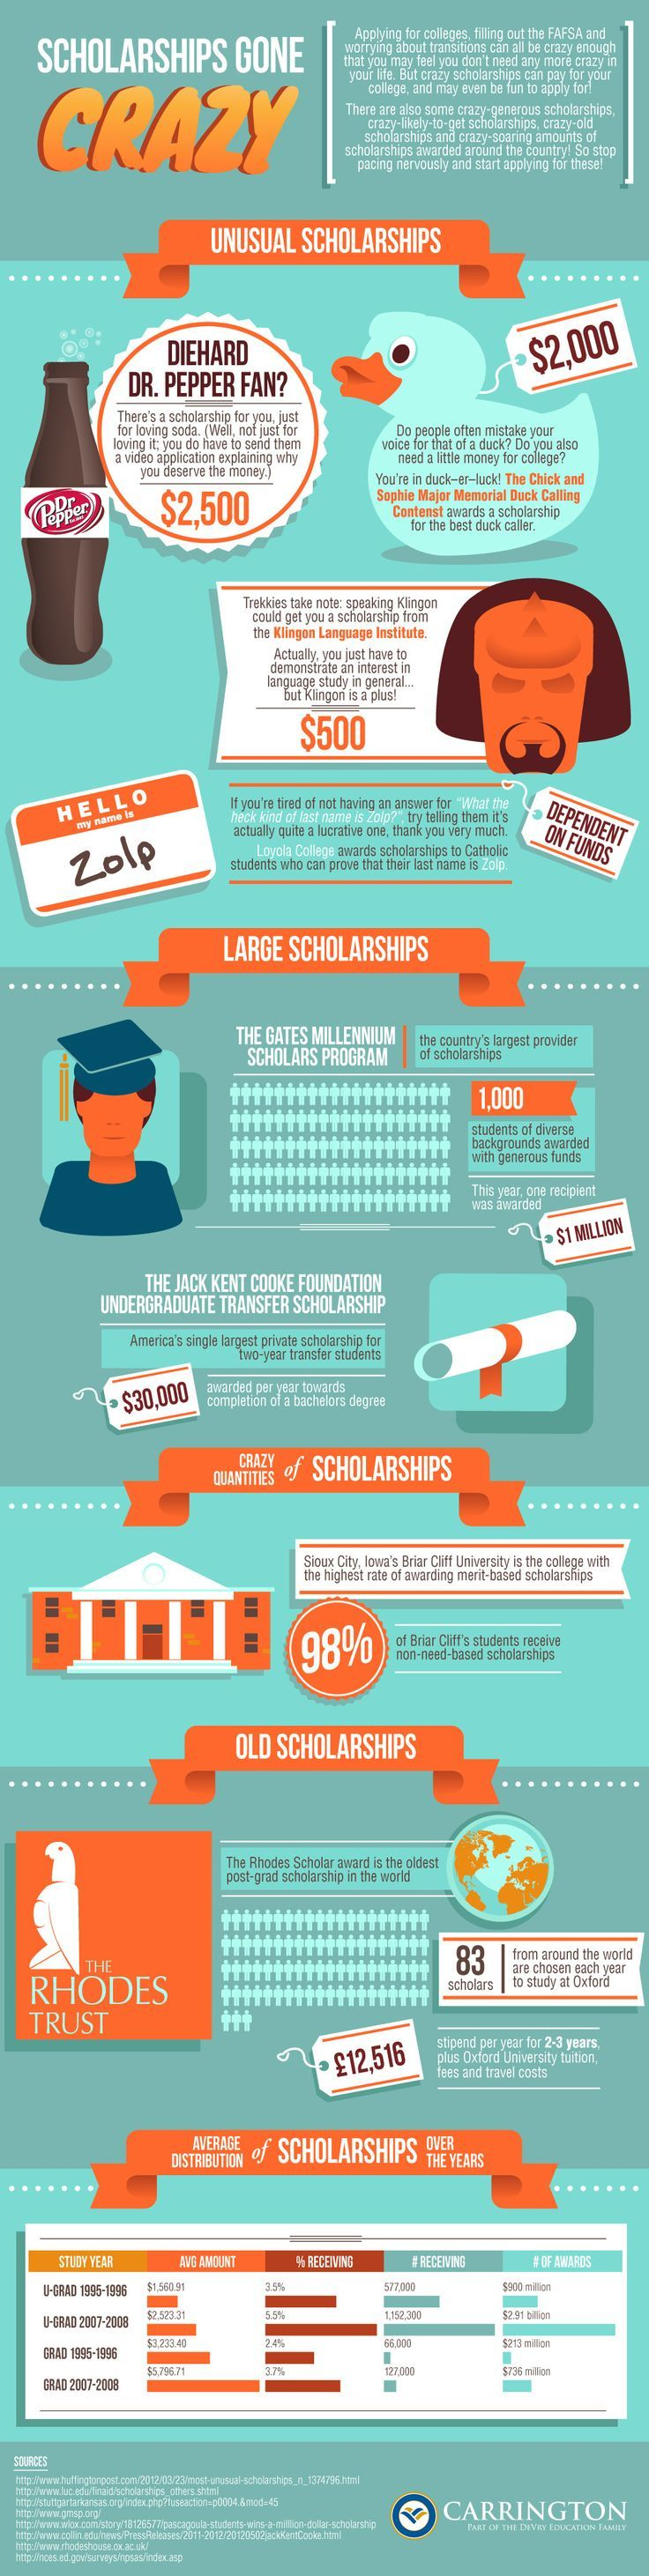 Scholarships Gone Crazy - Do you qualify for any of these?